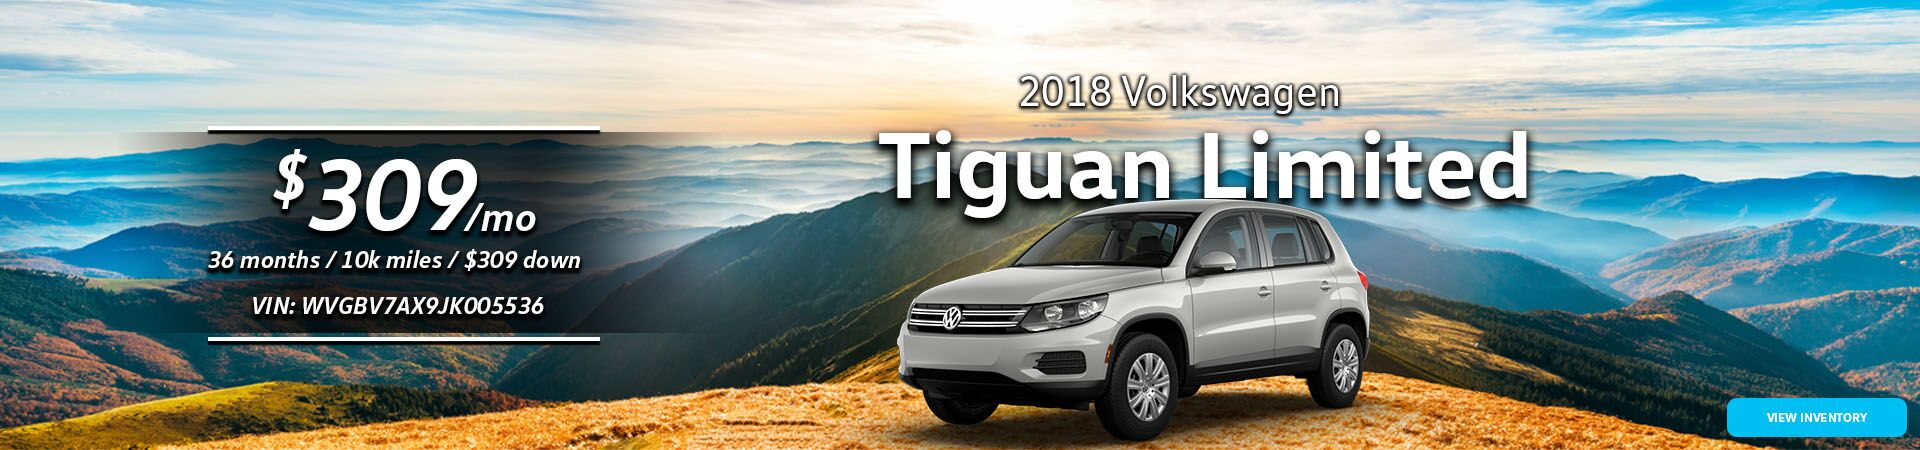 August Tiguan Limited Slide